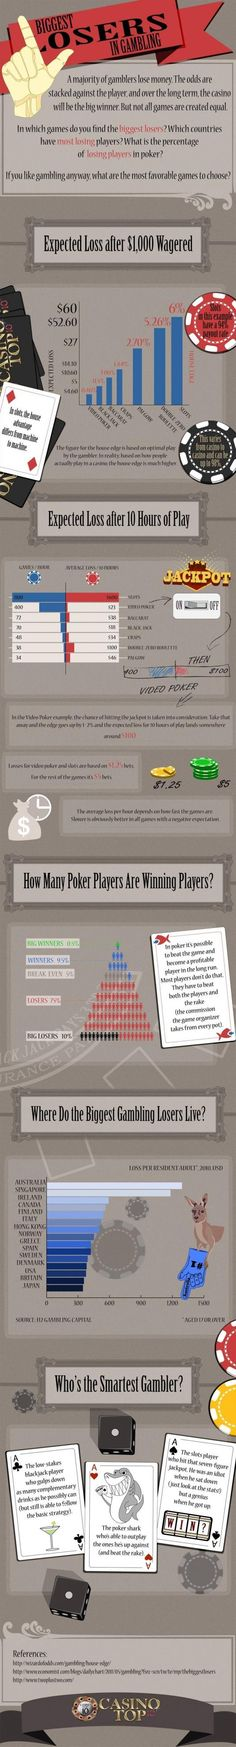 This infographic is all about the biggest losers in gambling.  When you wager on the blackjack table or insert coin in slot machine, players will be up against the house benefit.